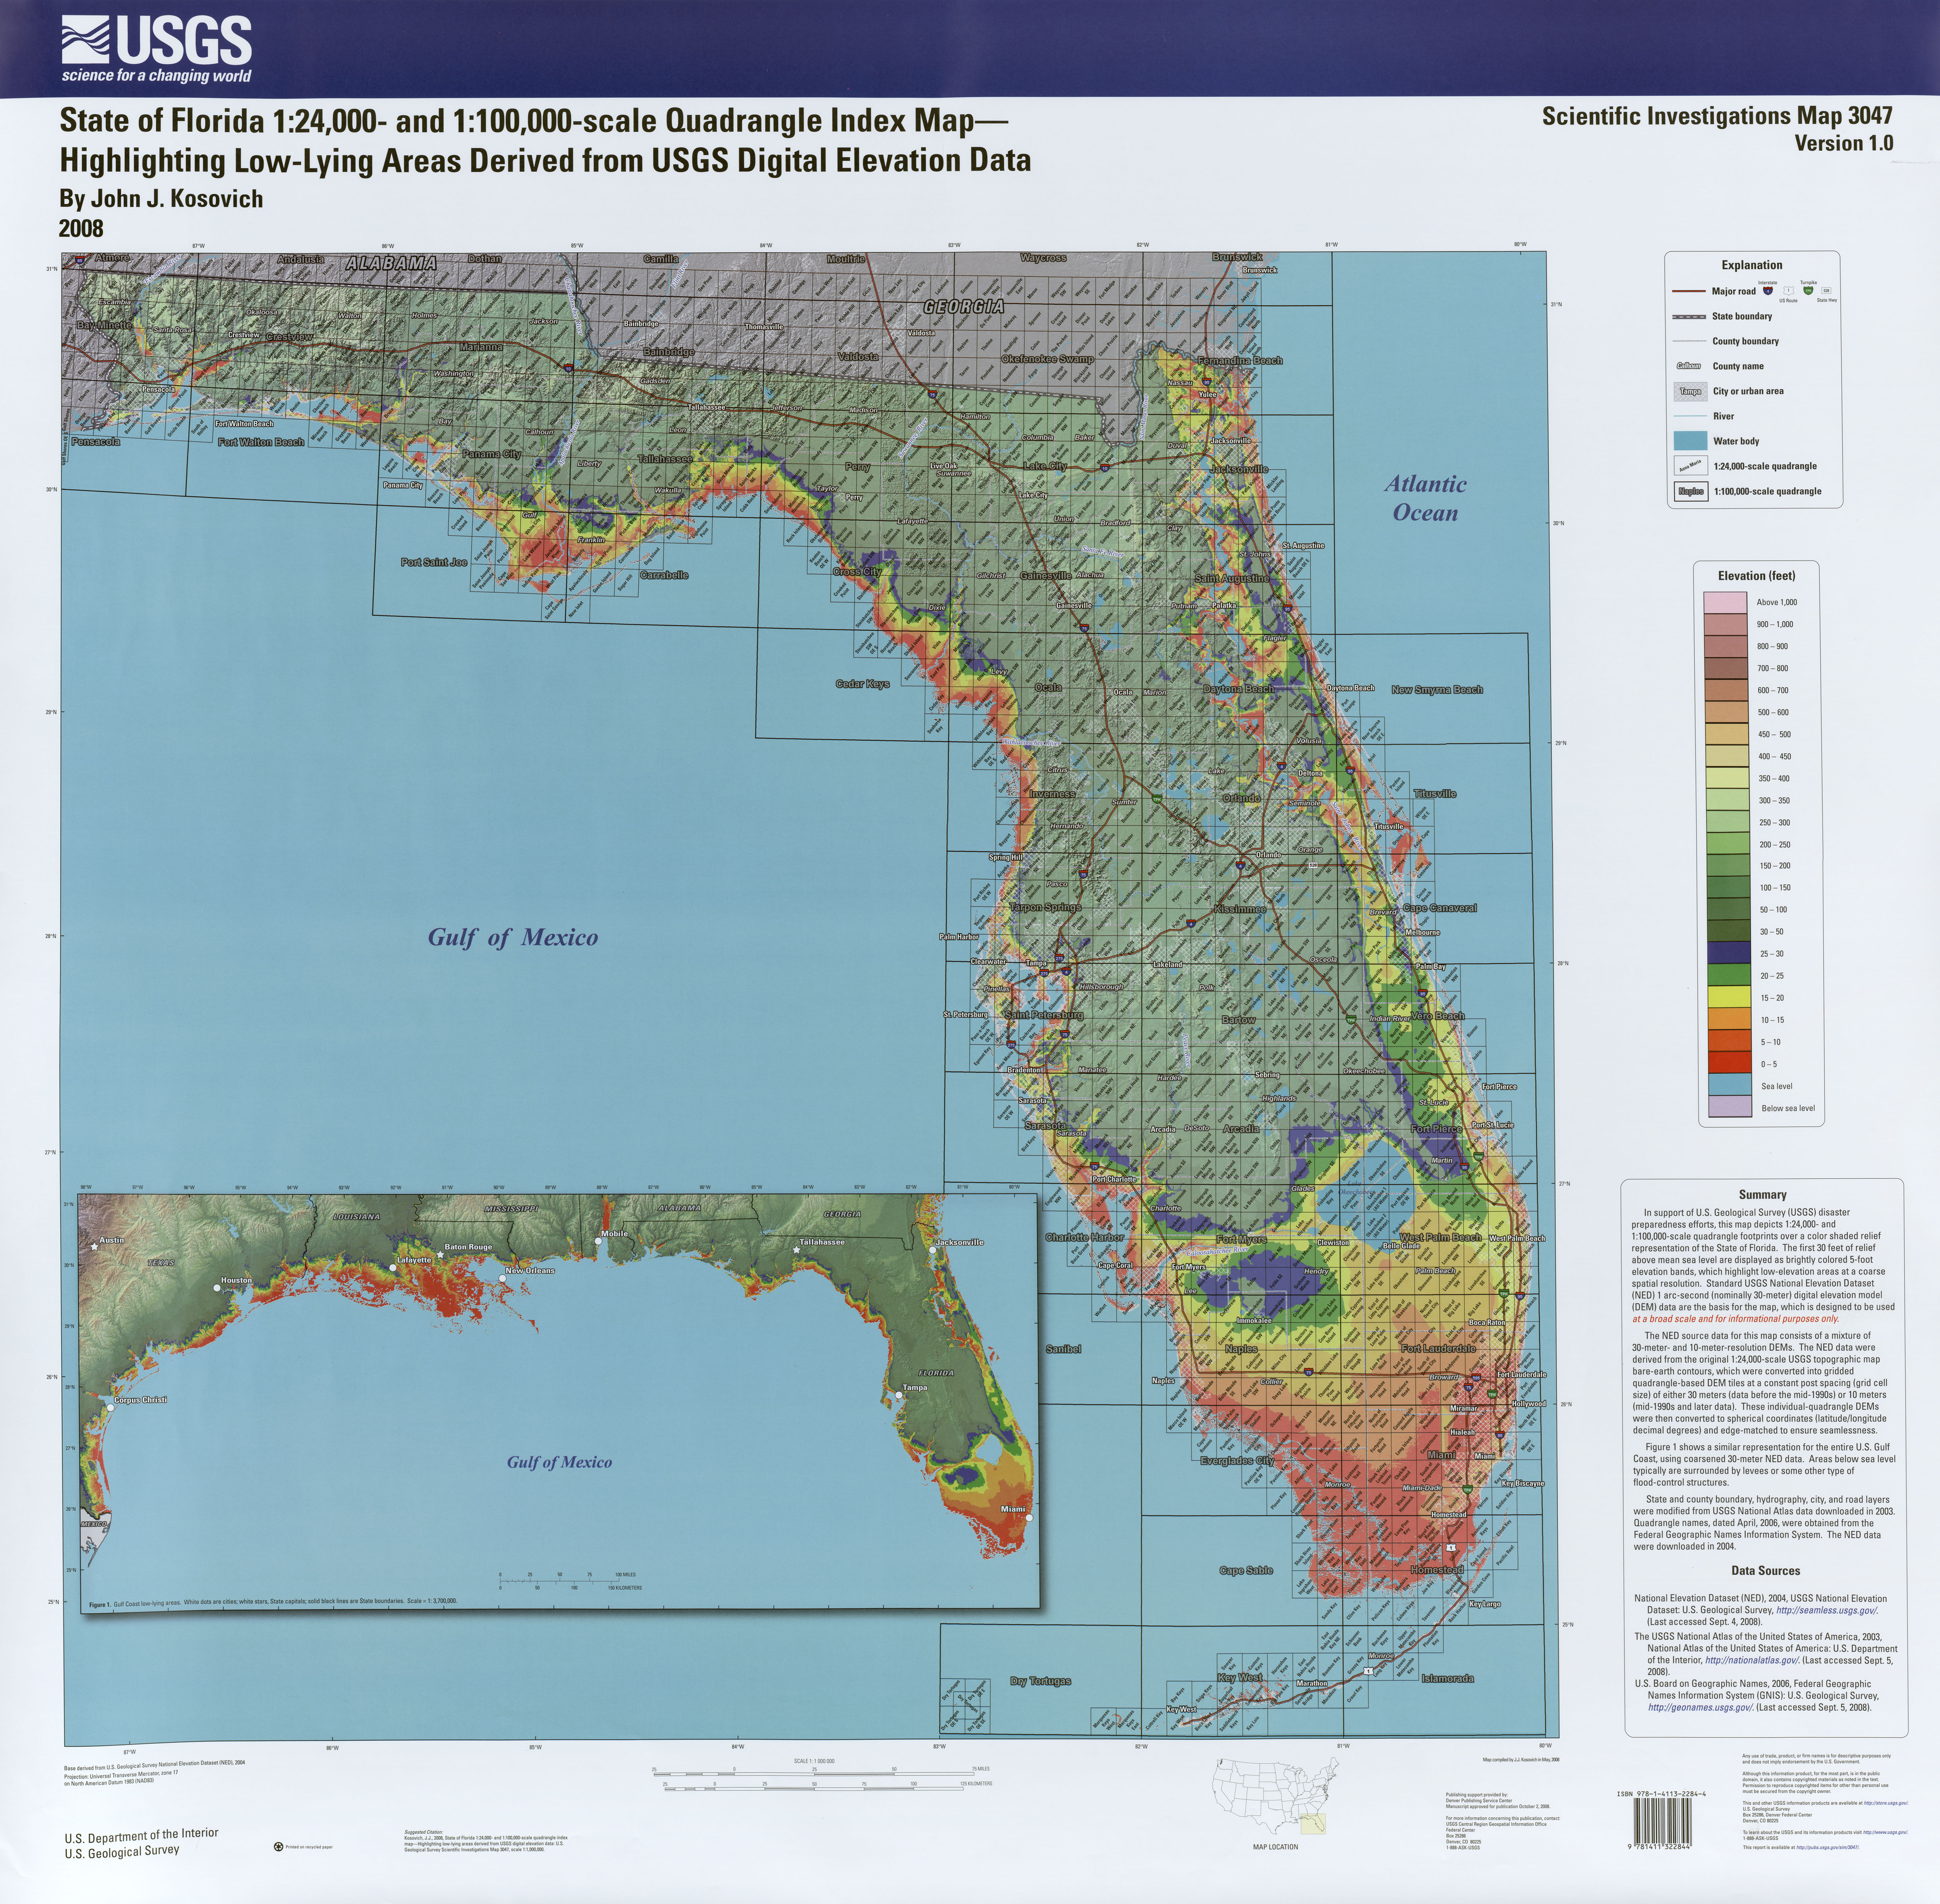 Florida Maps - Perry-Castañeda Map Collection - Ut Library Online - Florida Keys Topographic Map